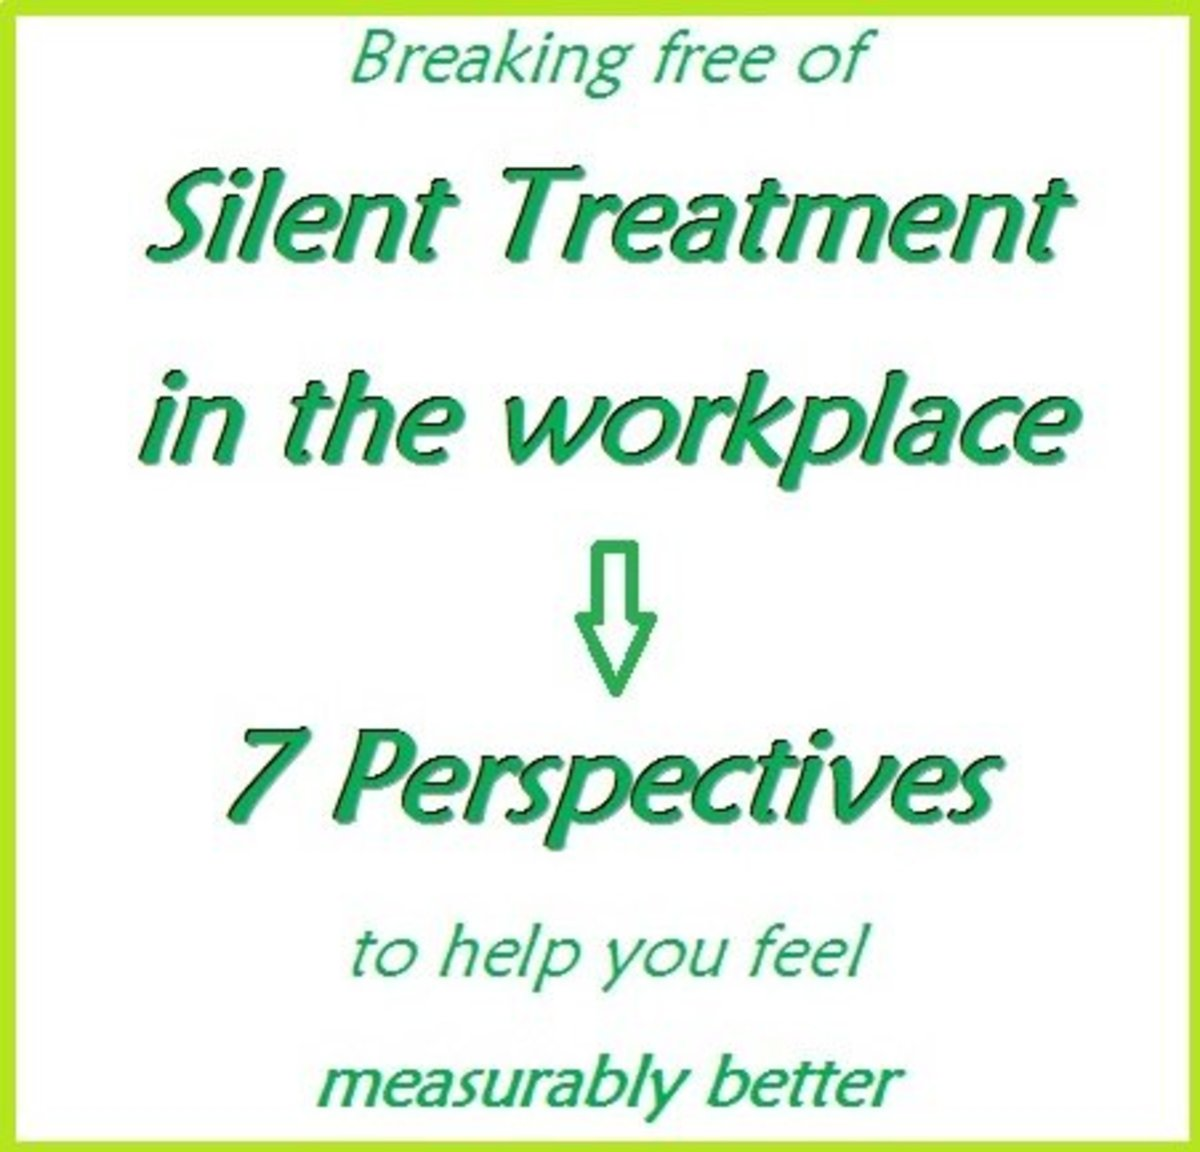 Silent Treatment at Work - When it's time to take things further